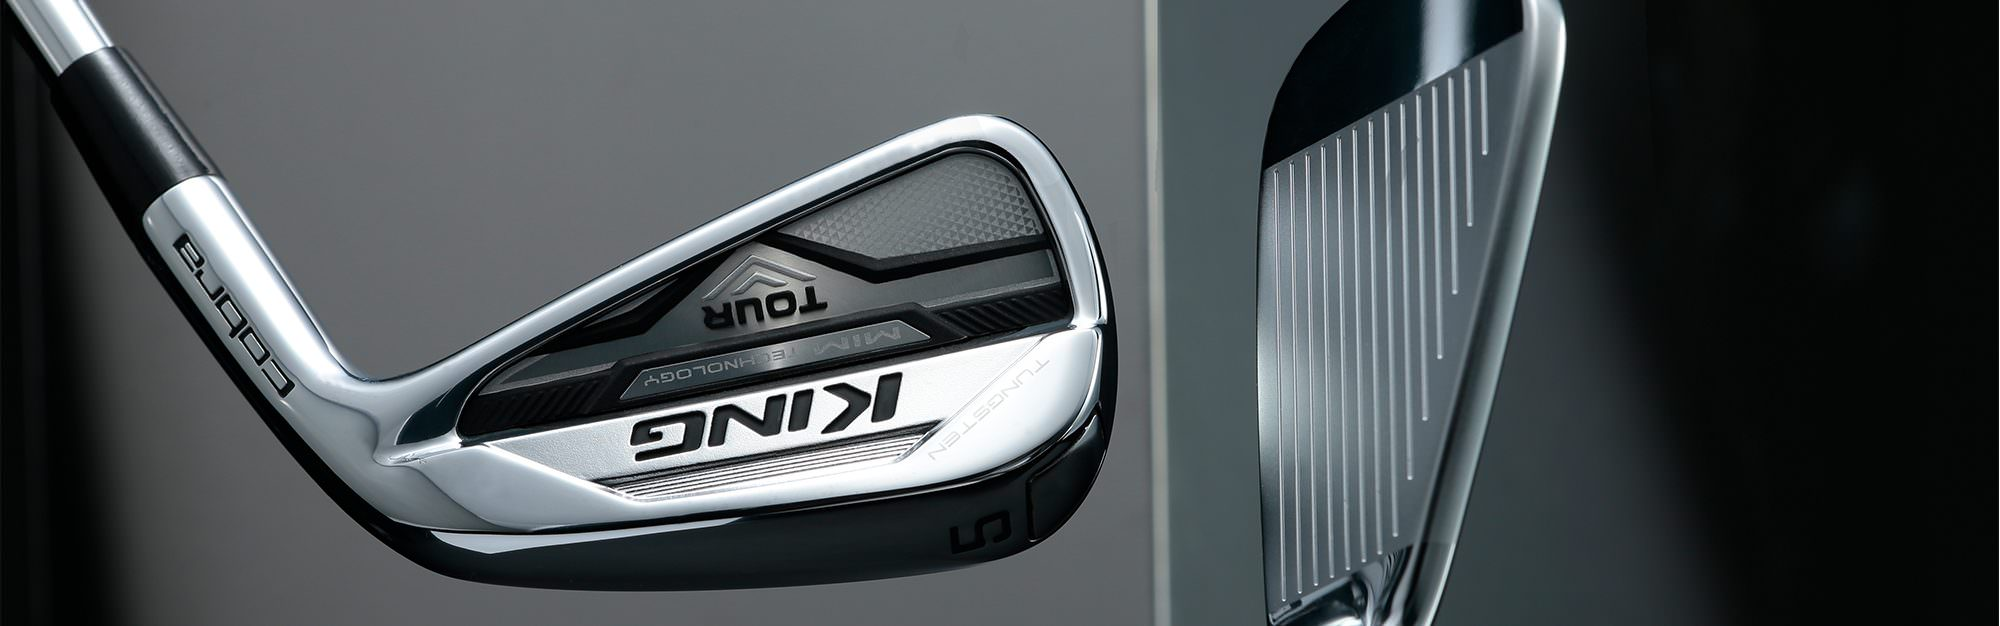 Cobra launch new King Tour irons - but do they perform as good as they look?